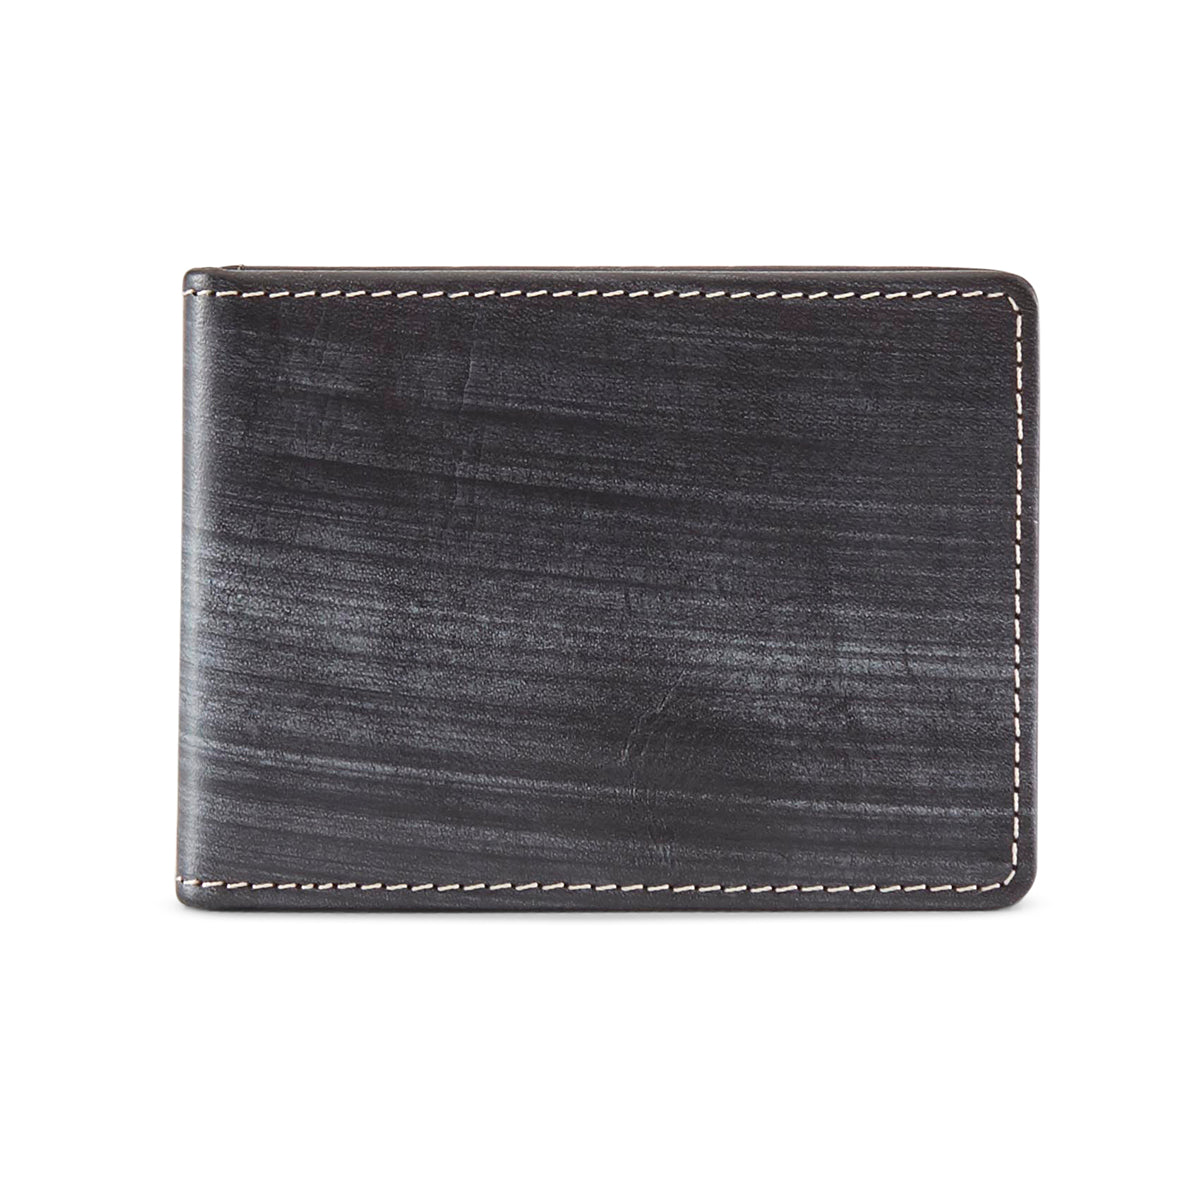 RFID ID Thinfold Wallet